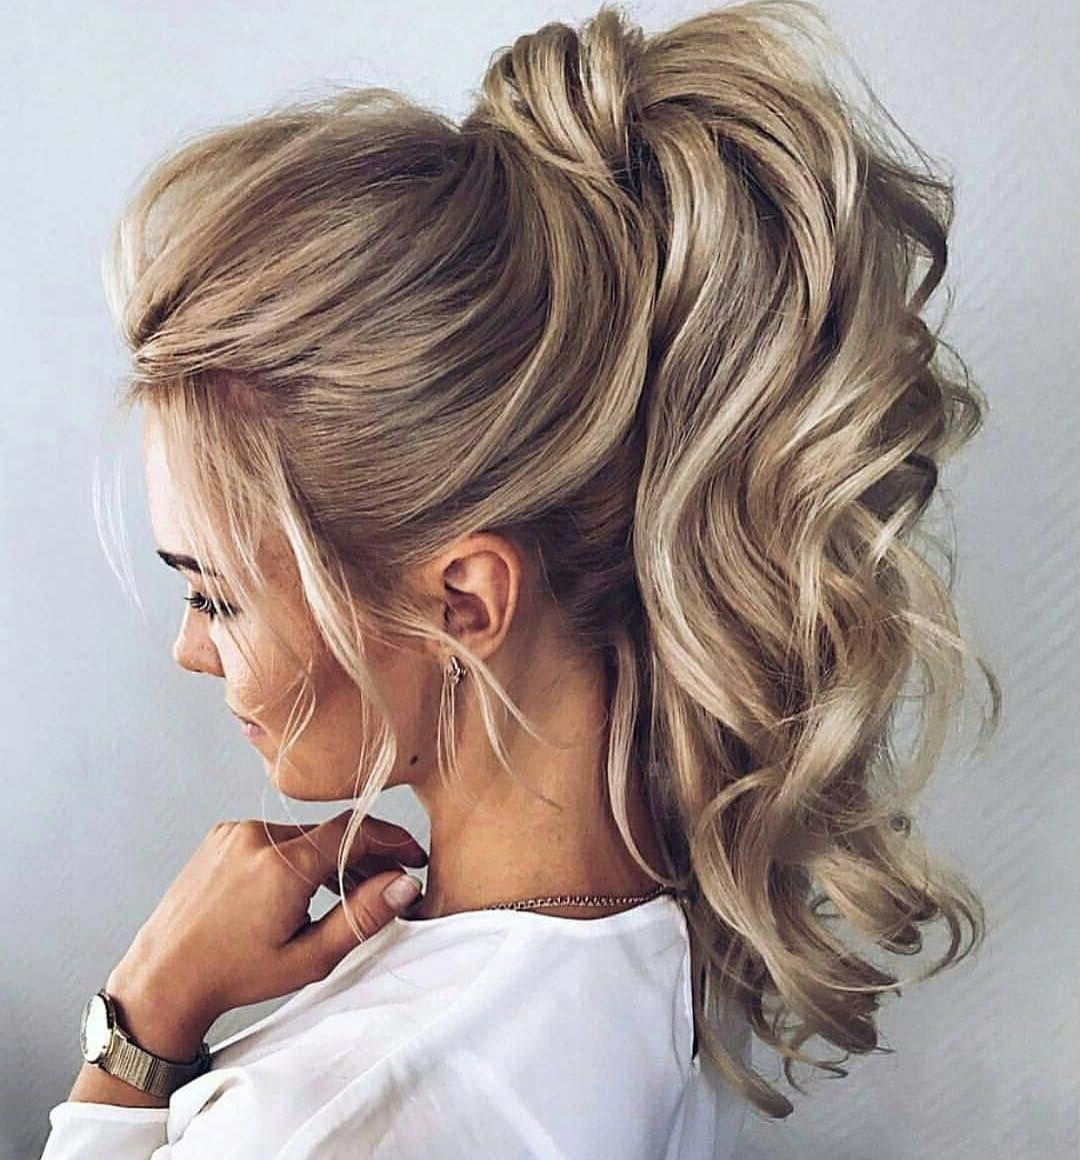 Easy Wedding Guest Hairstyle For Long Hair Weddingguesthair Easy Wedding Guest Hairstyles Guest Hair Long Hair Styles